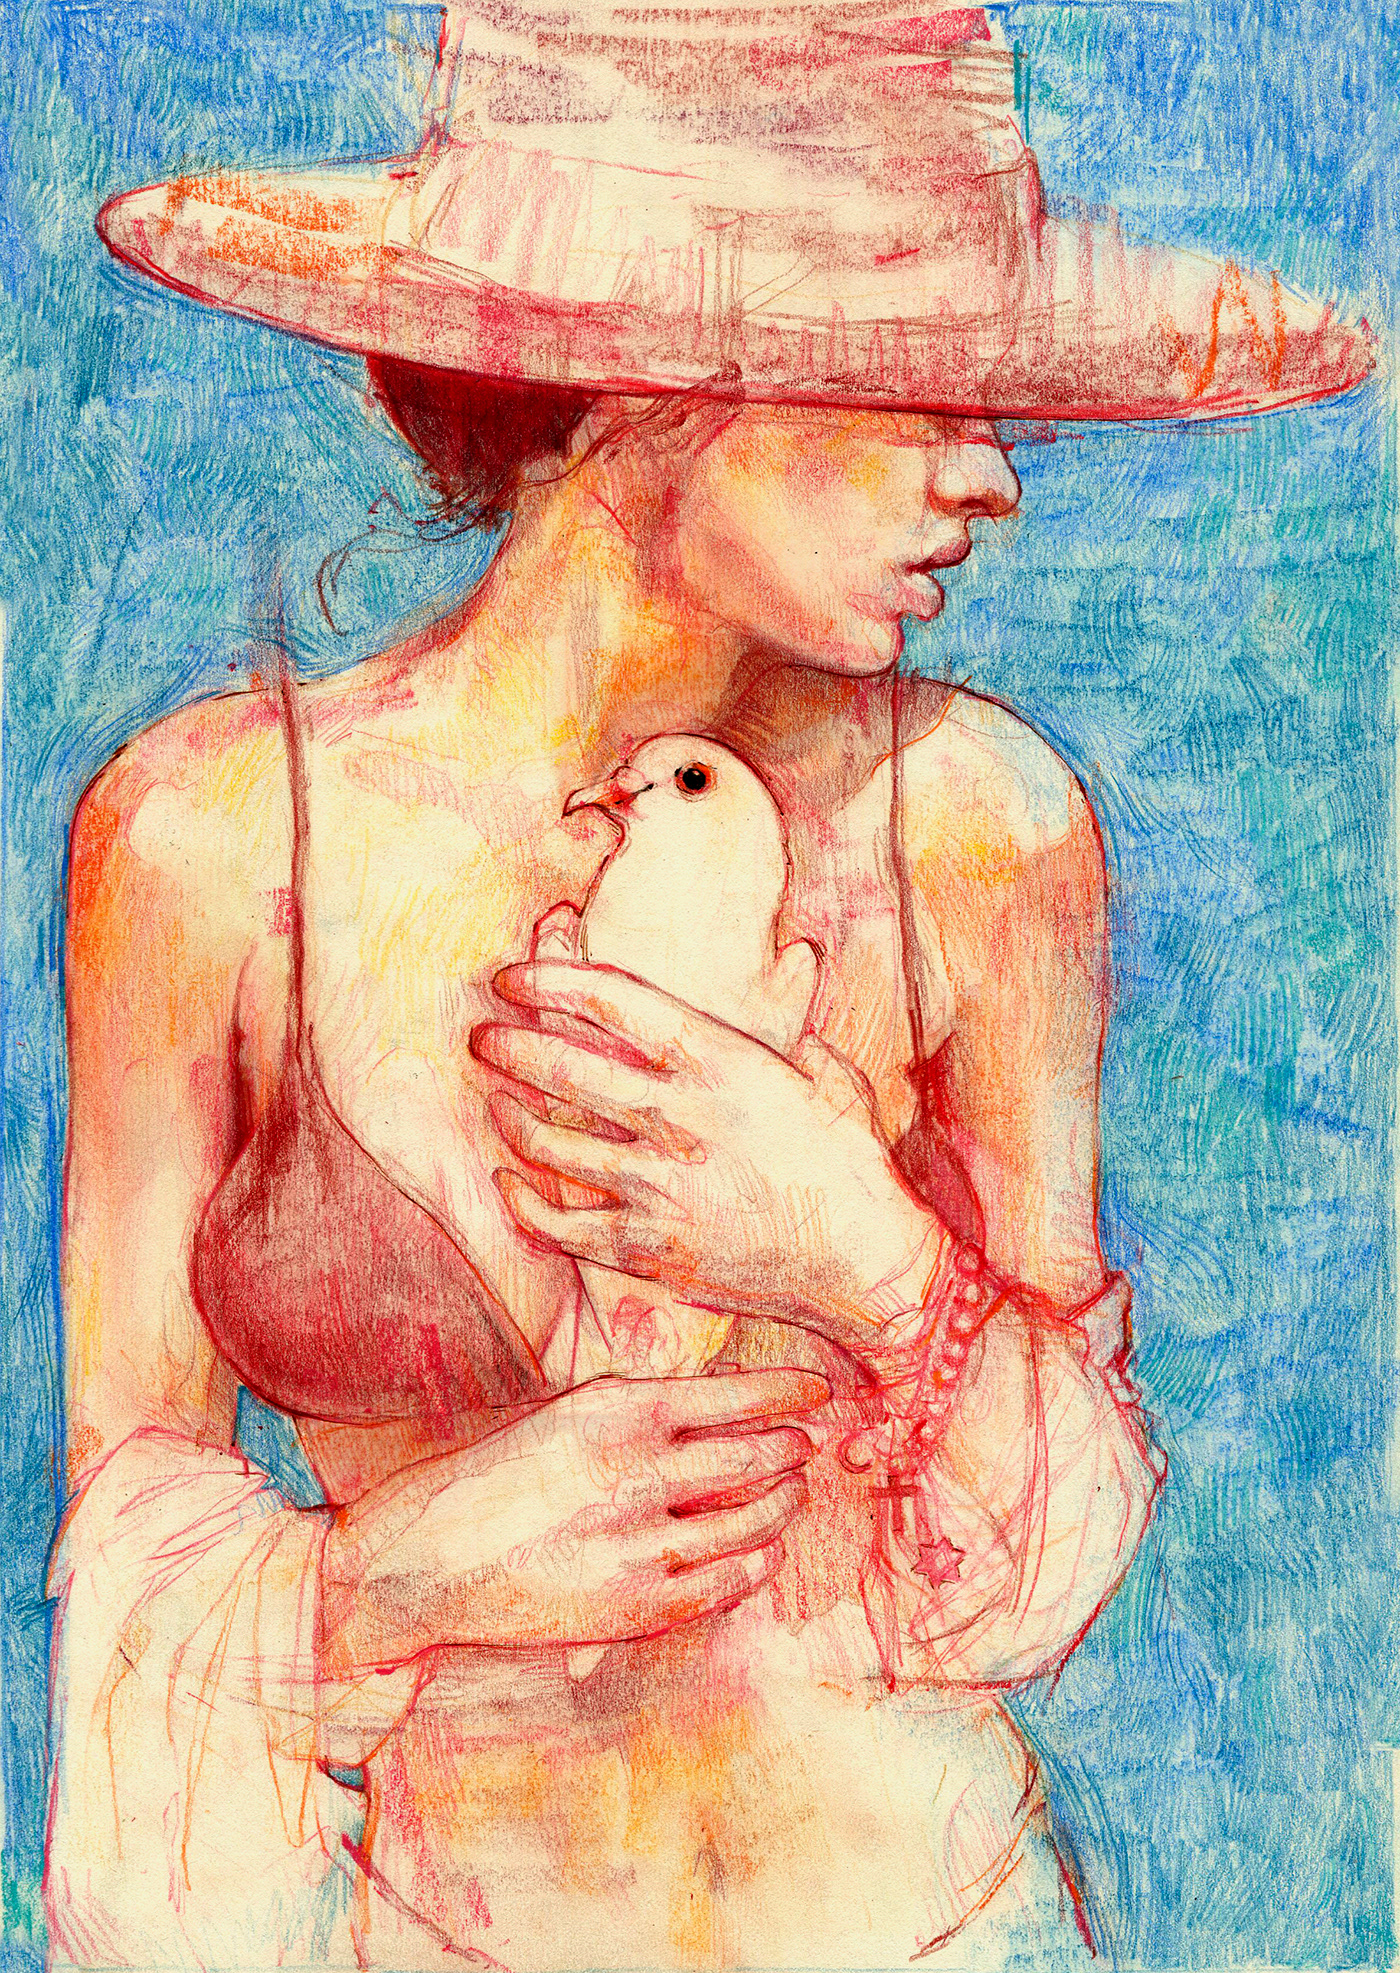 For My Love...